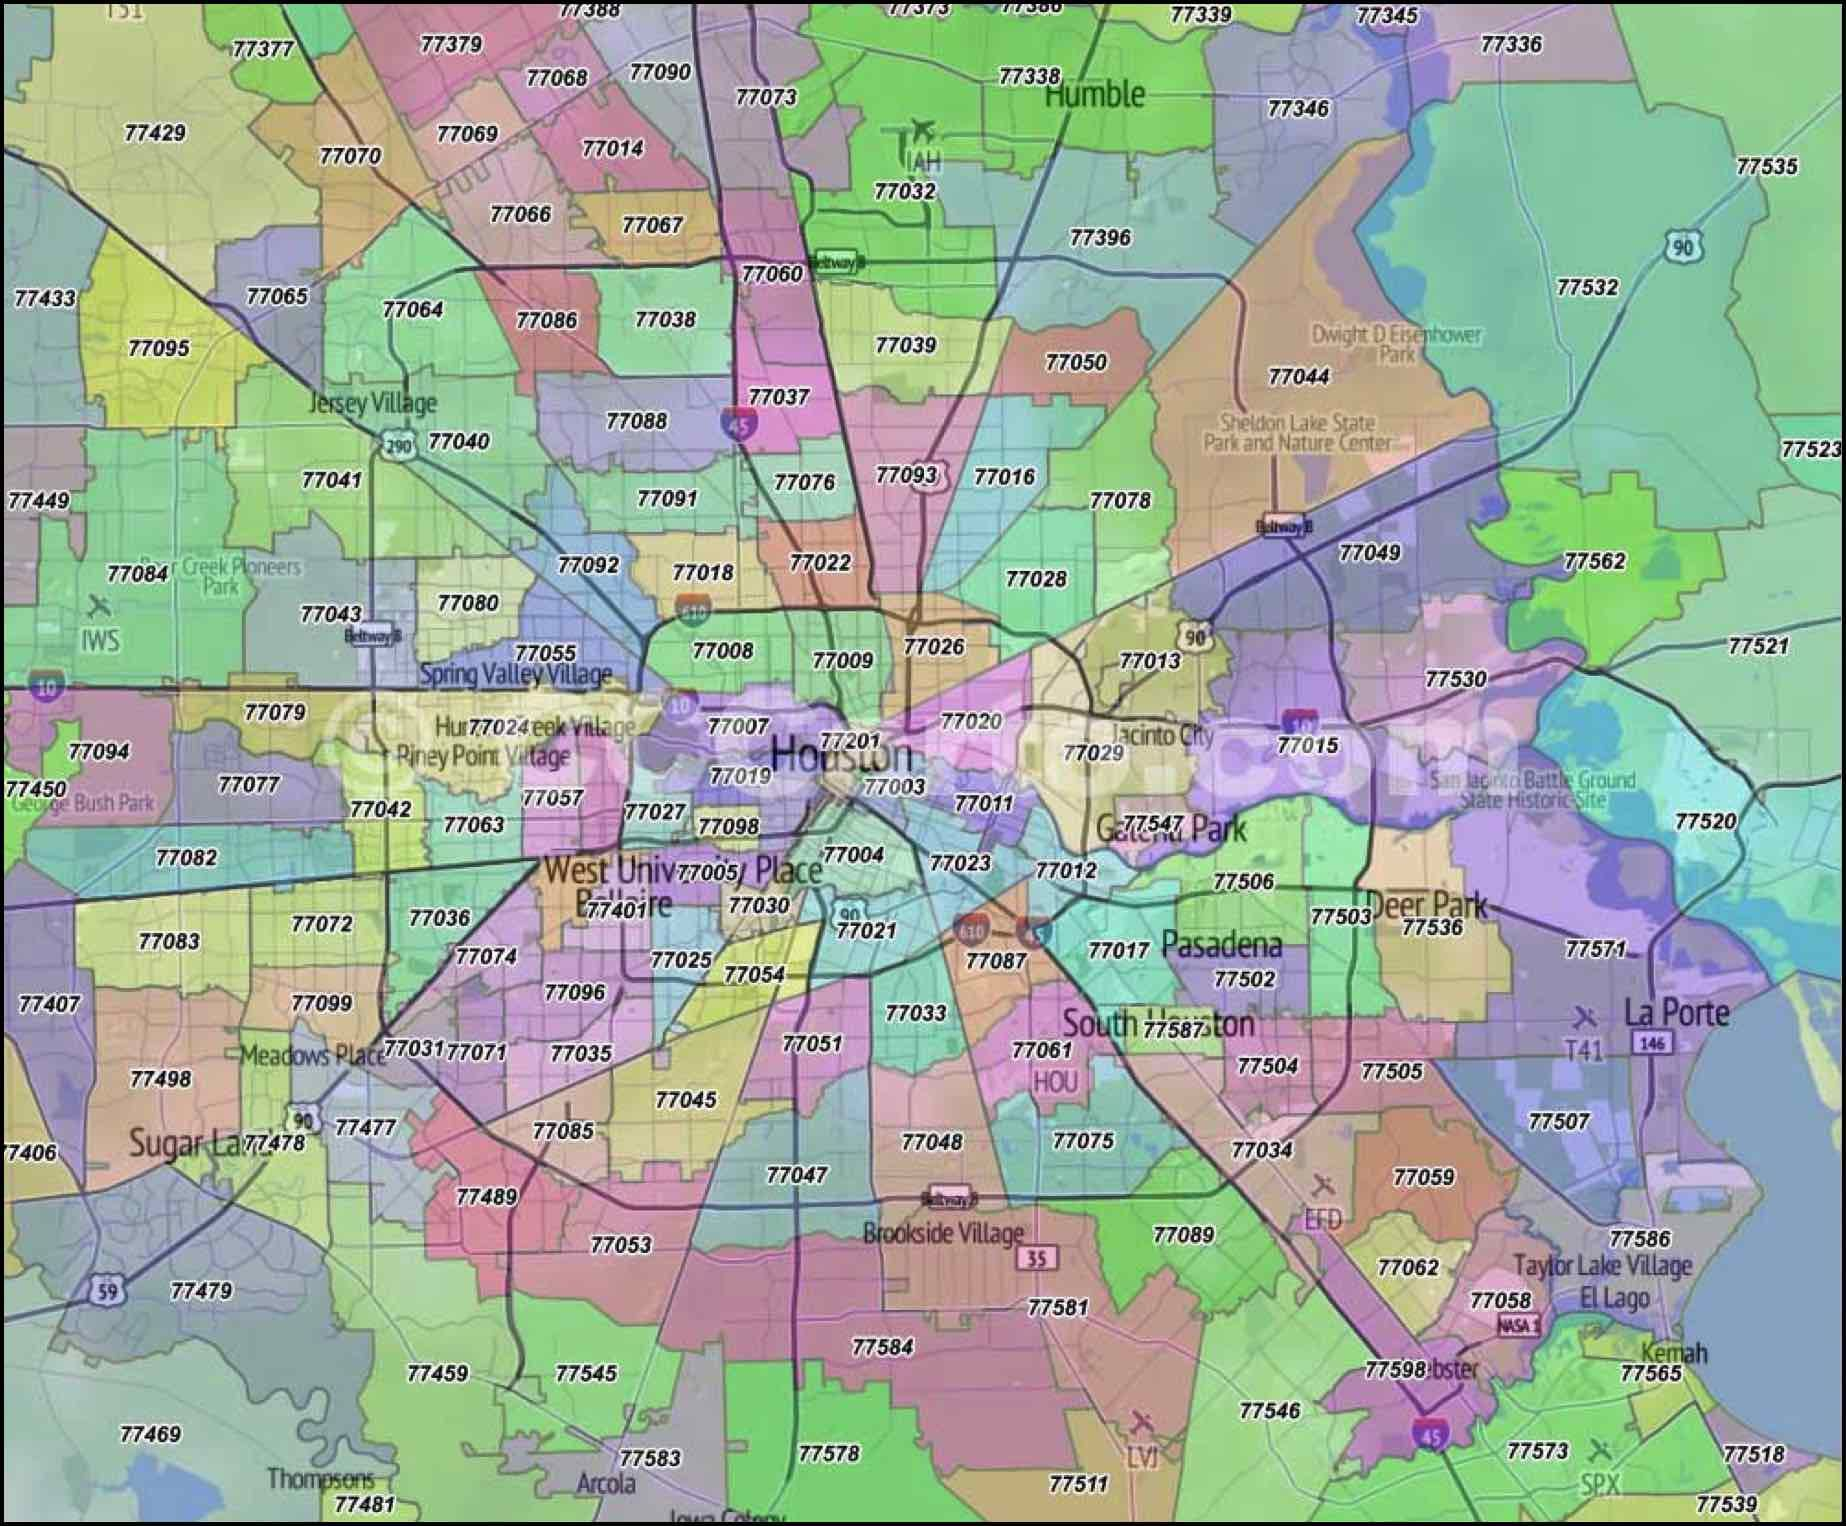 Zip Code Map Houston Tx Houston Zip Code Map | Houston zip code map, Zip code map, Houston map